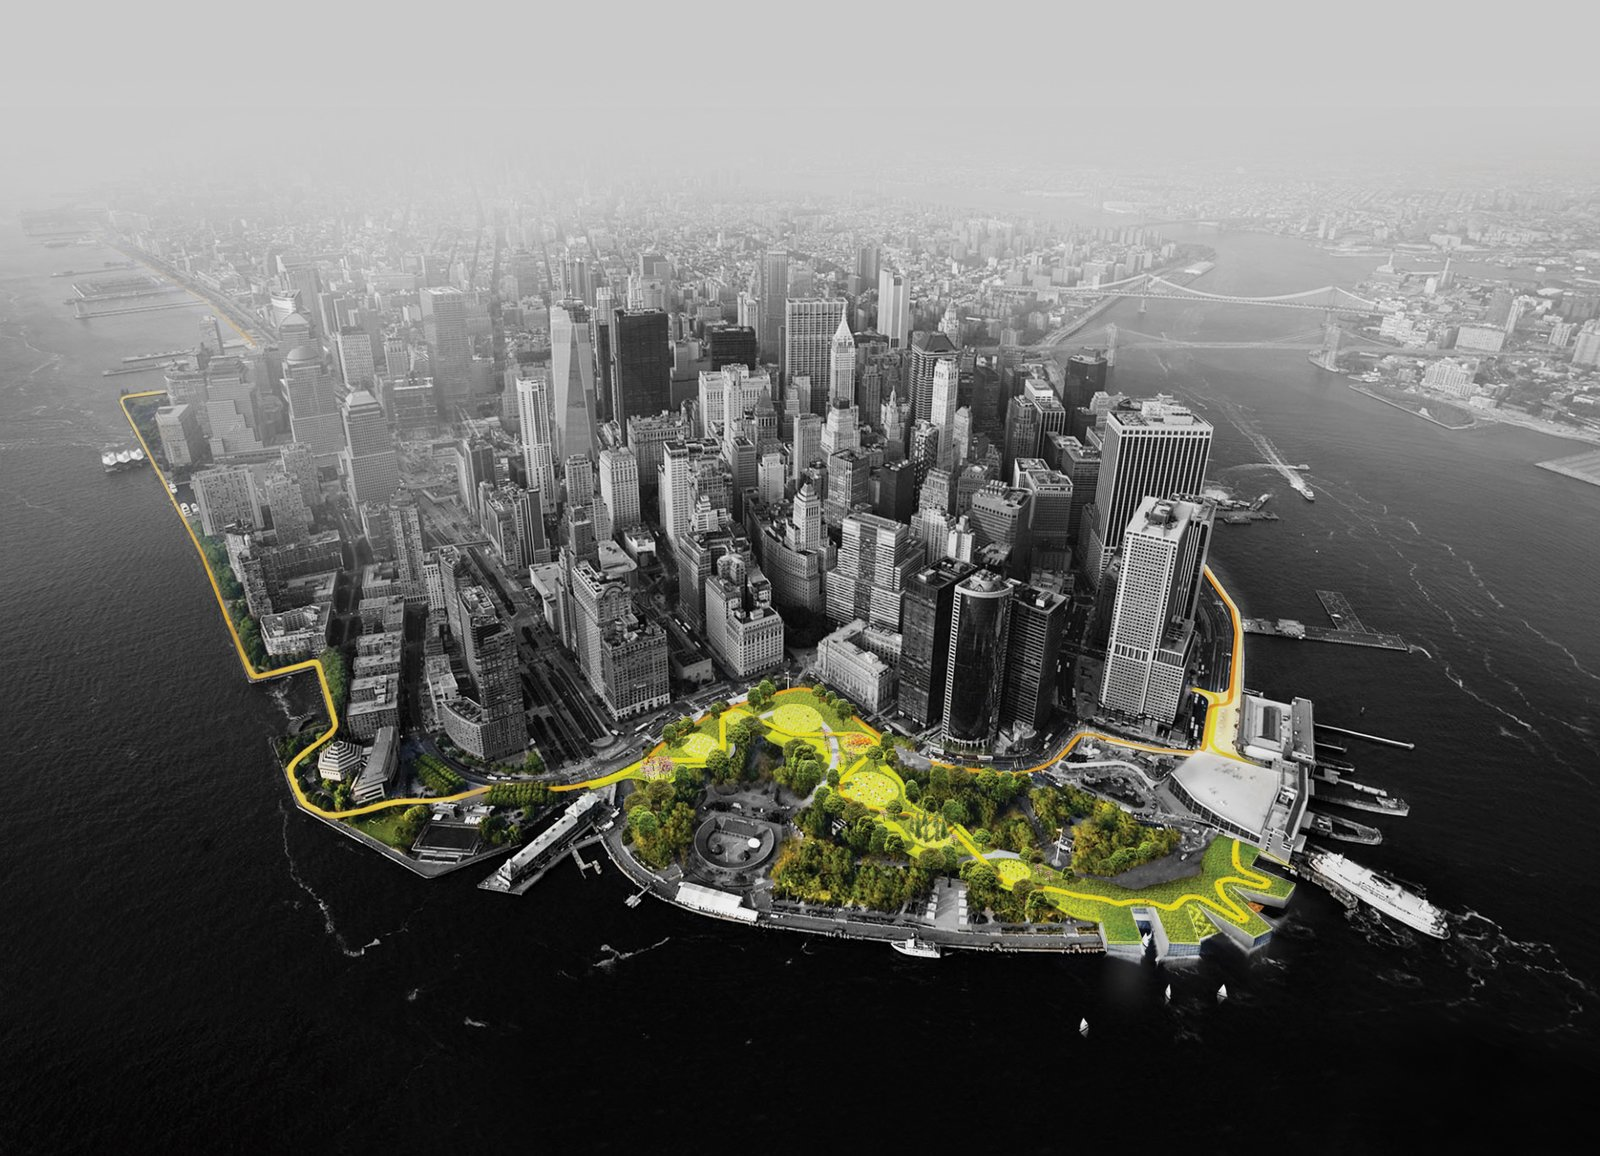 Photo 2 of 2 in A Megastructure Will Guard Manhattan From Superstorms